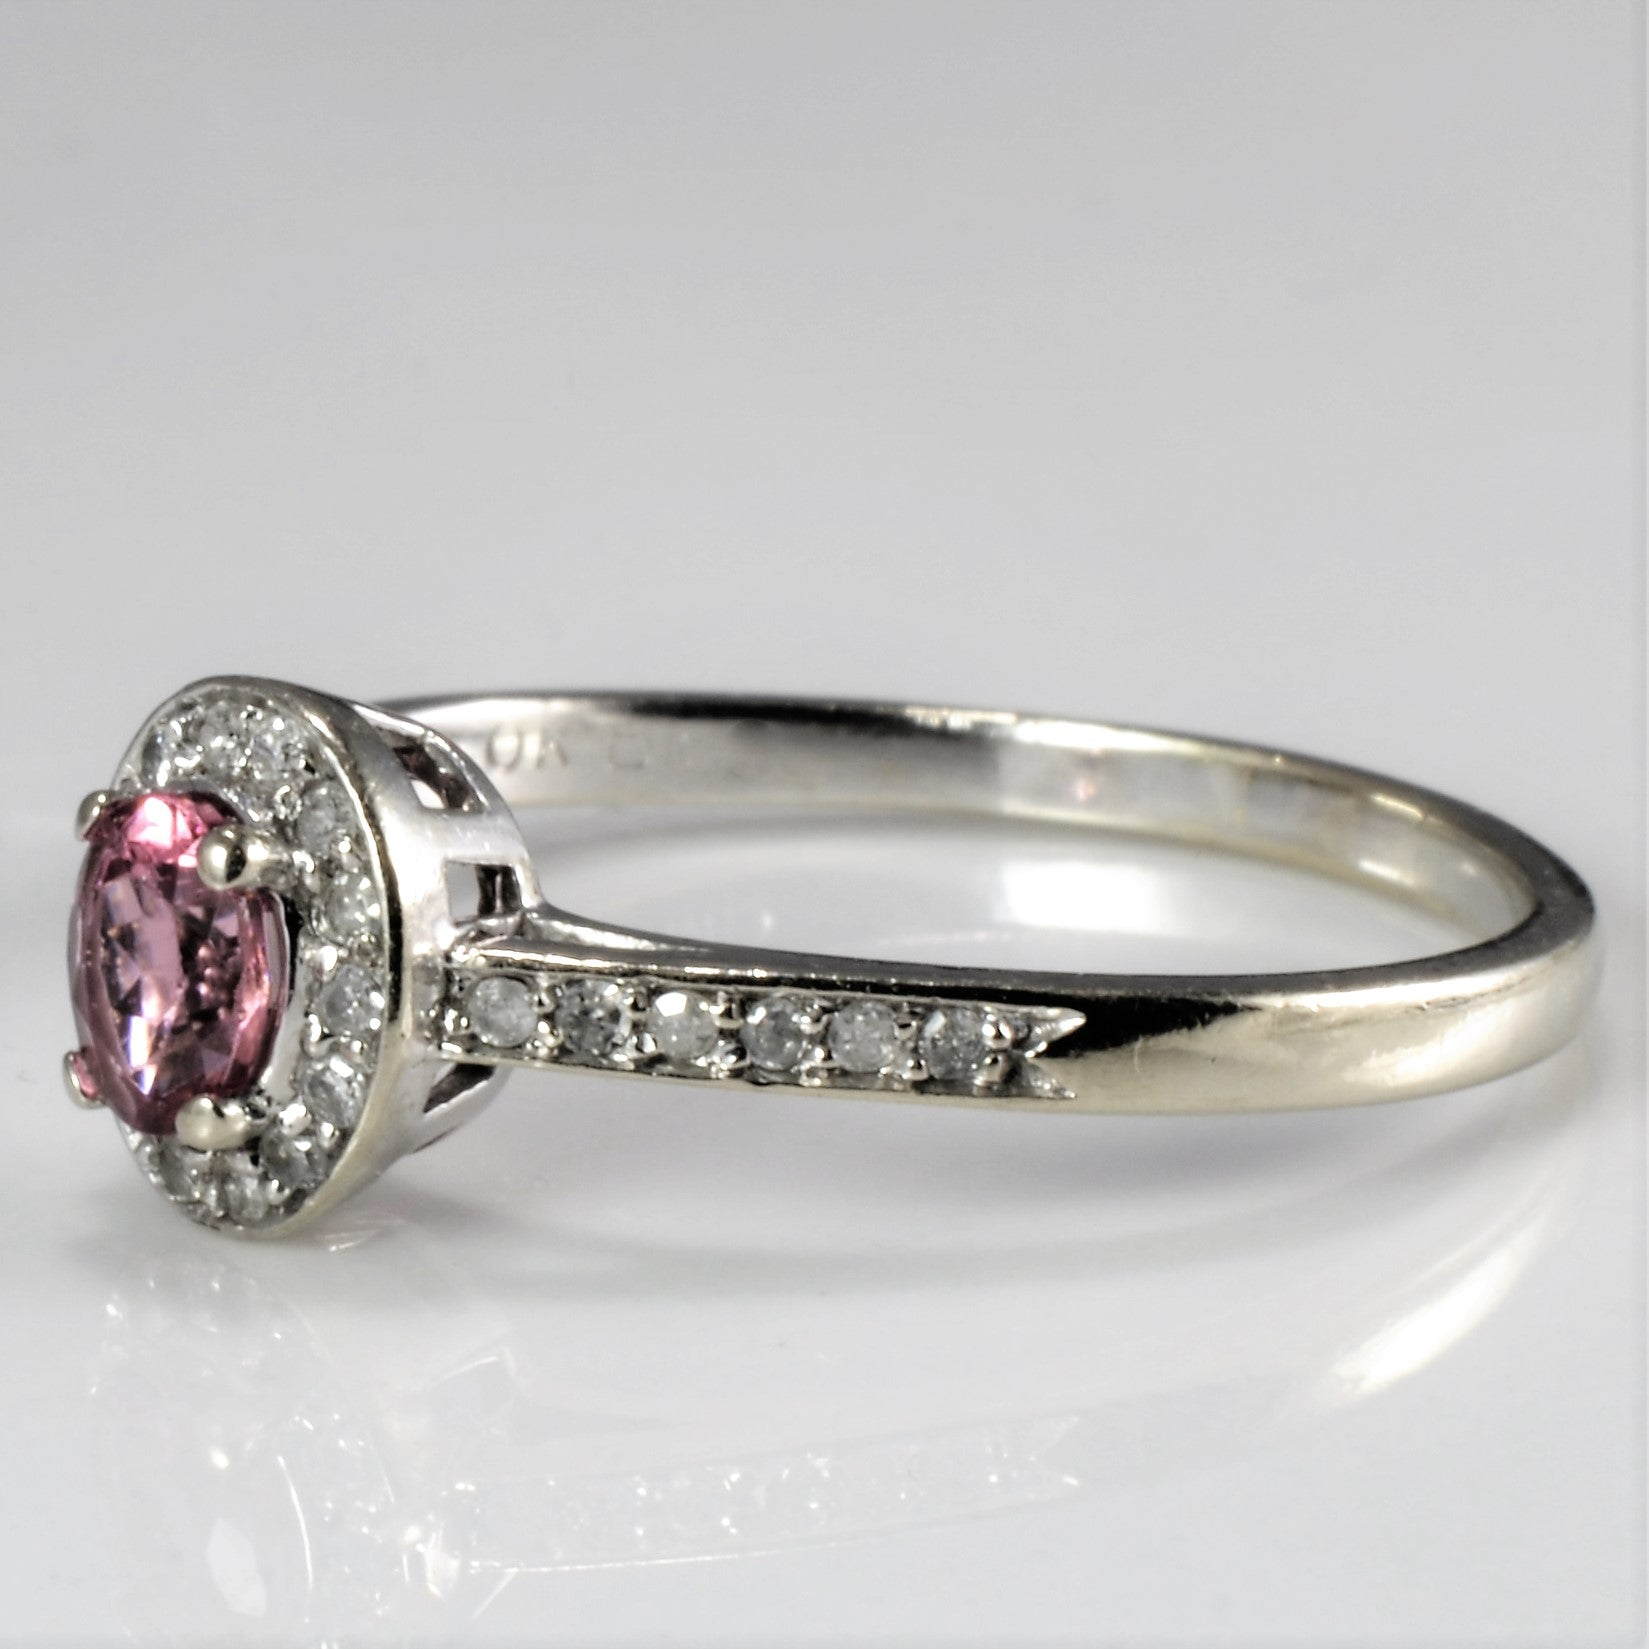 Tourmaline & Diamond Halo Ring | 0.08 ctw, SZ 9.5 |